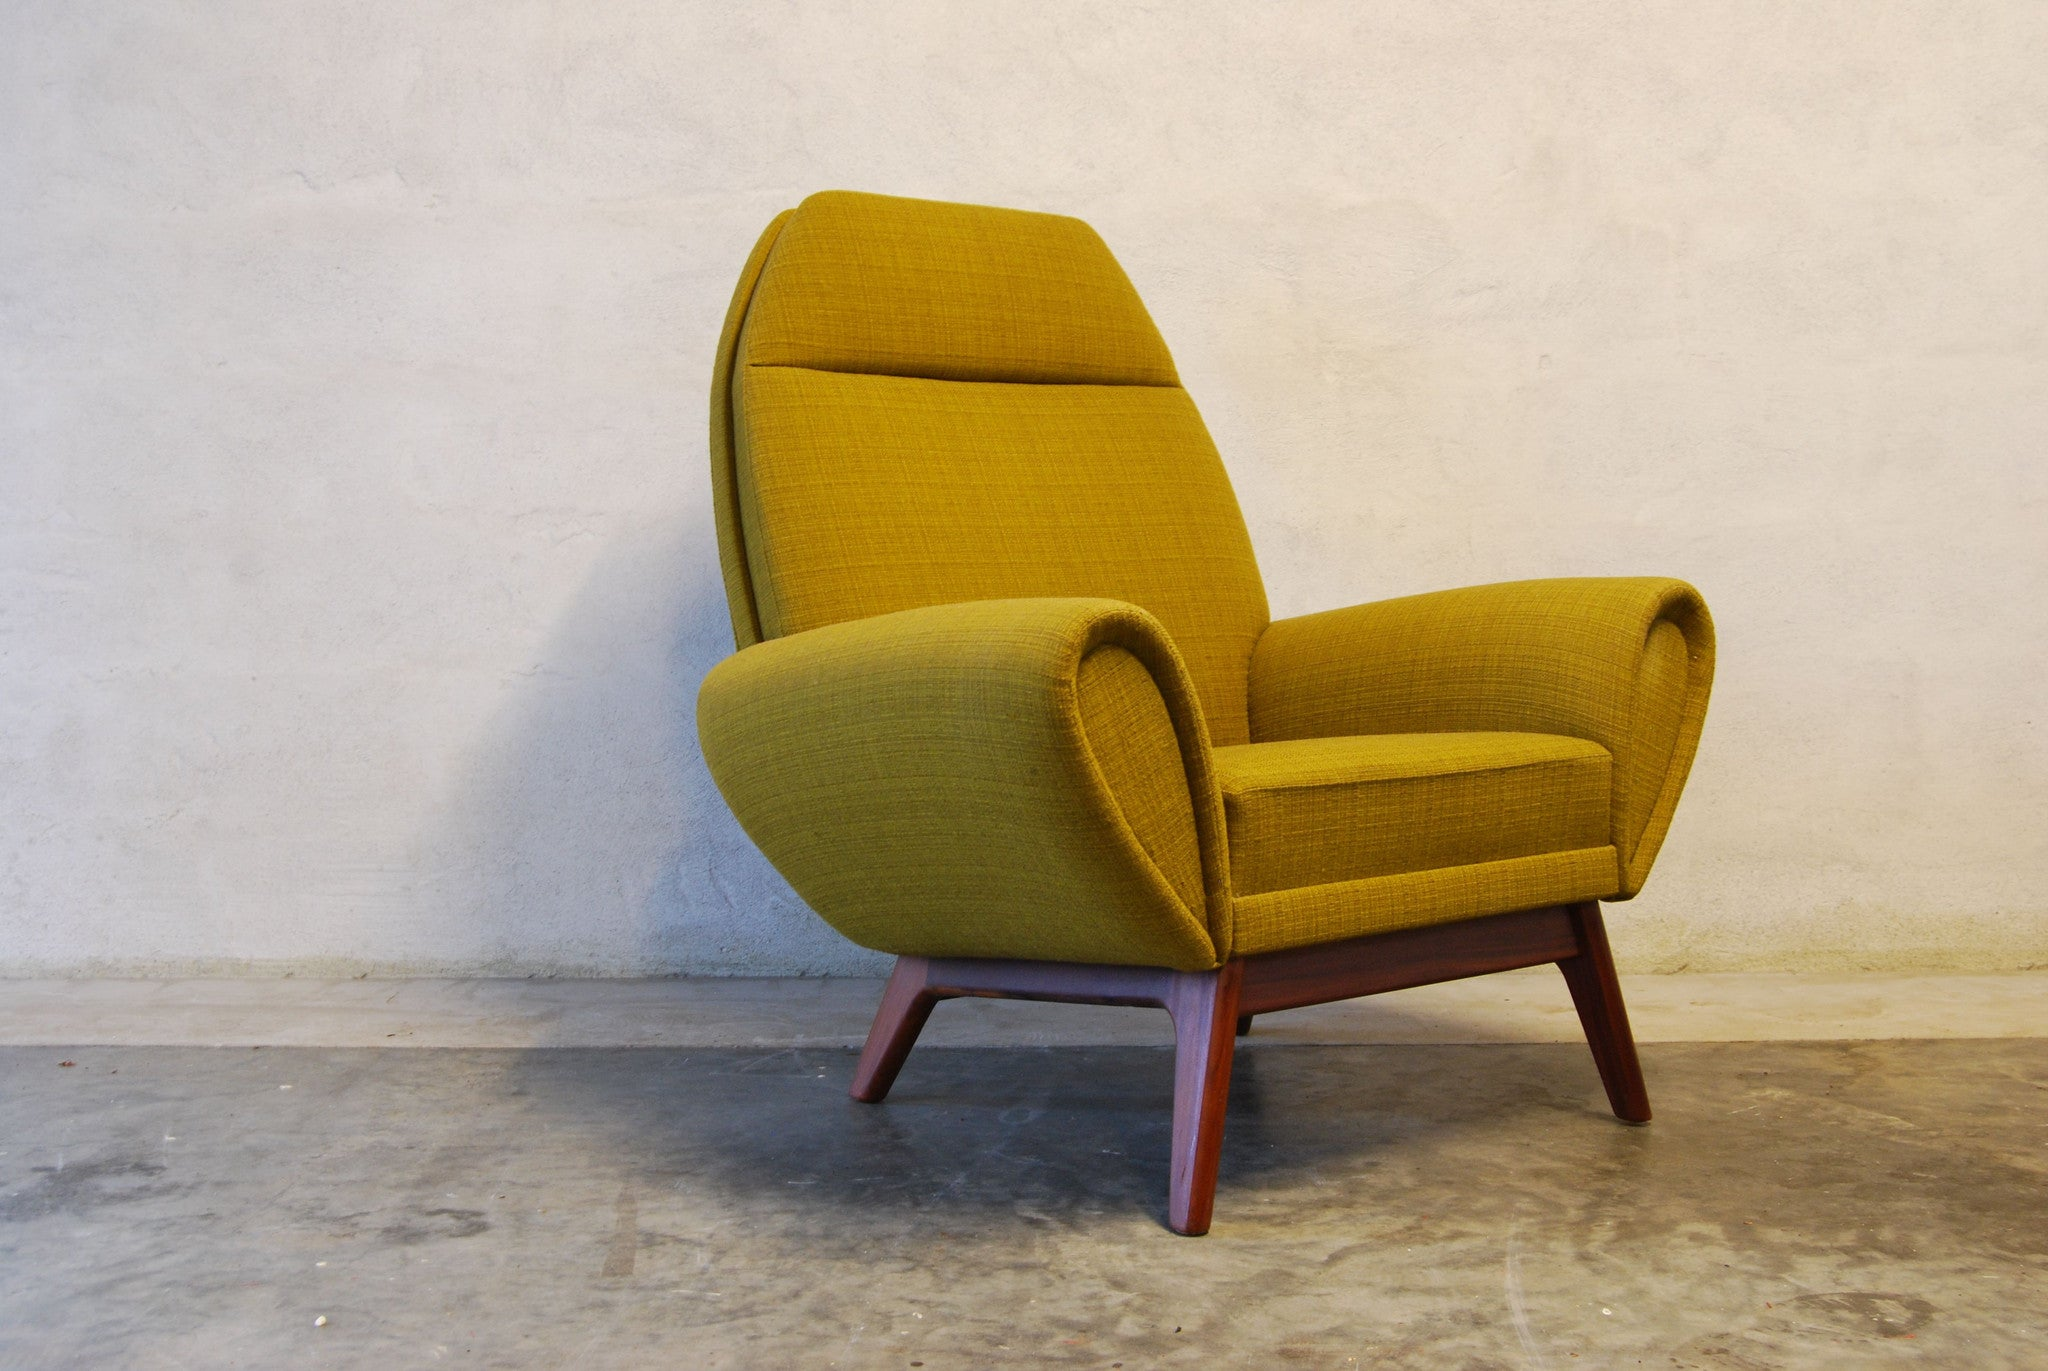 Lounge chair by Johannes Andersen